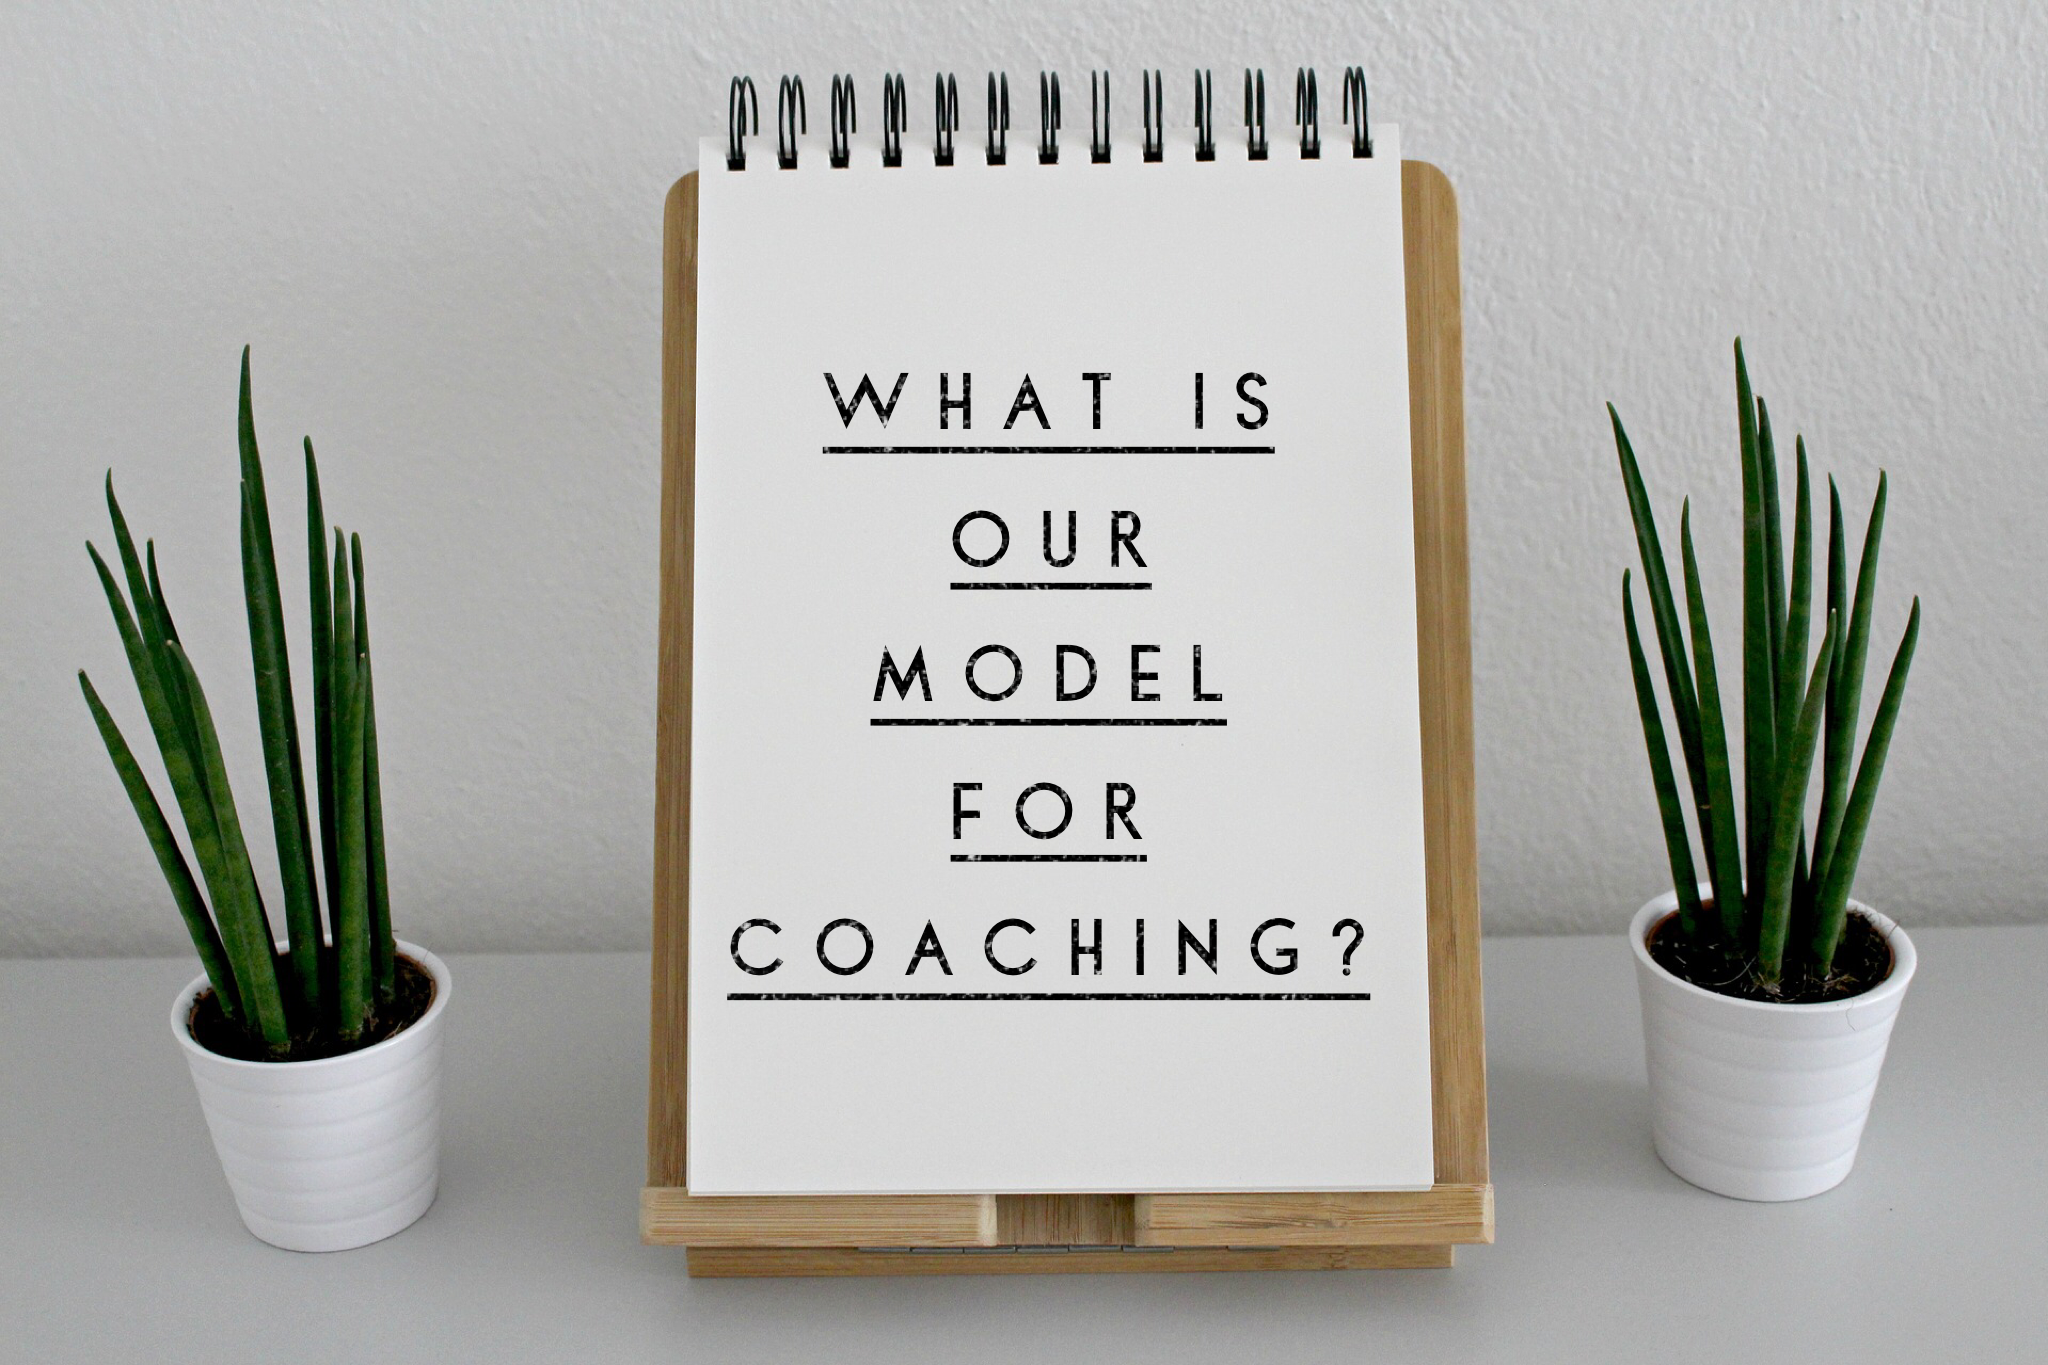 Listen To Our Video Now To Learn About The Model Of